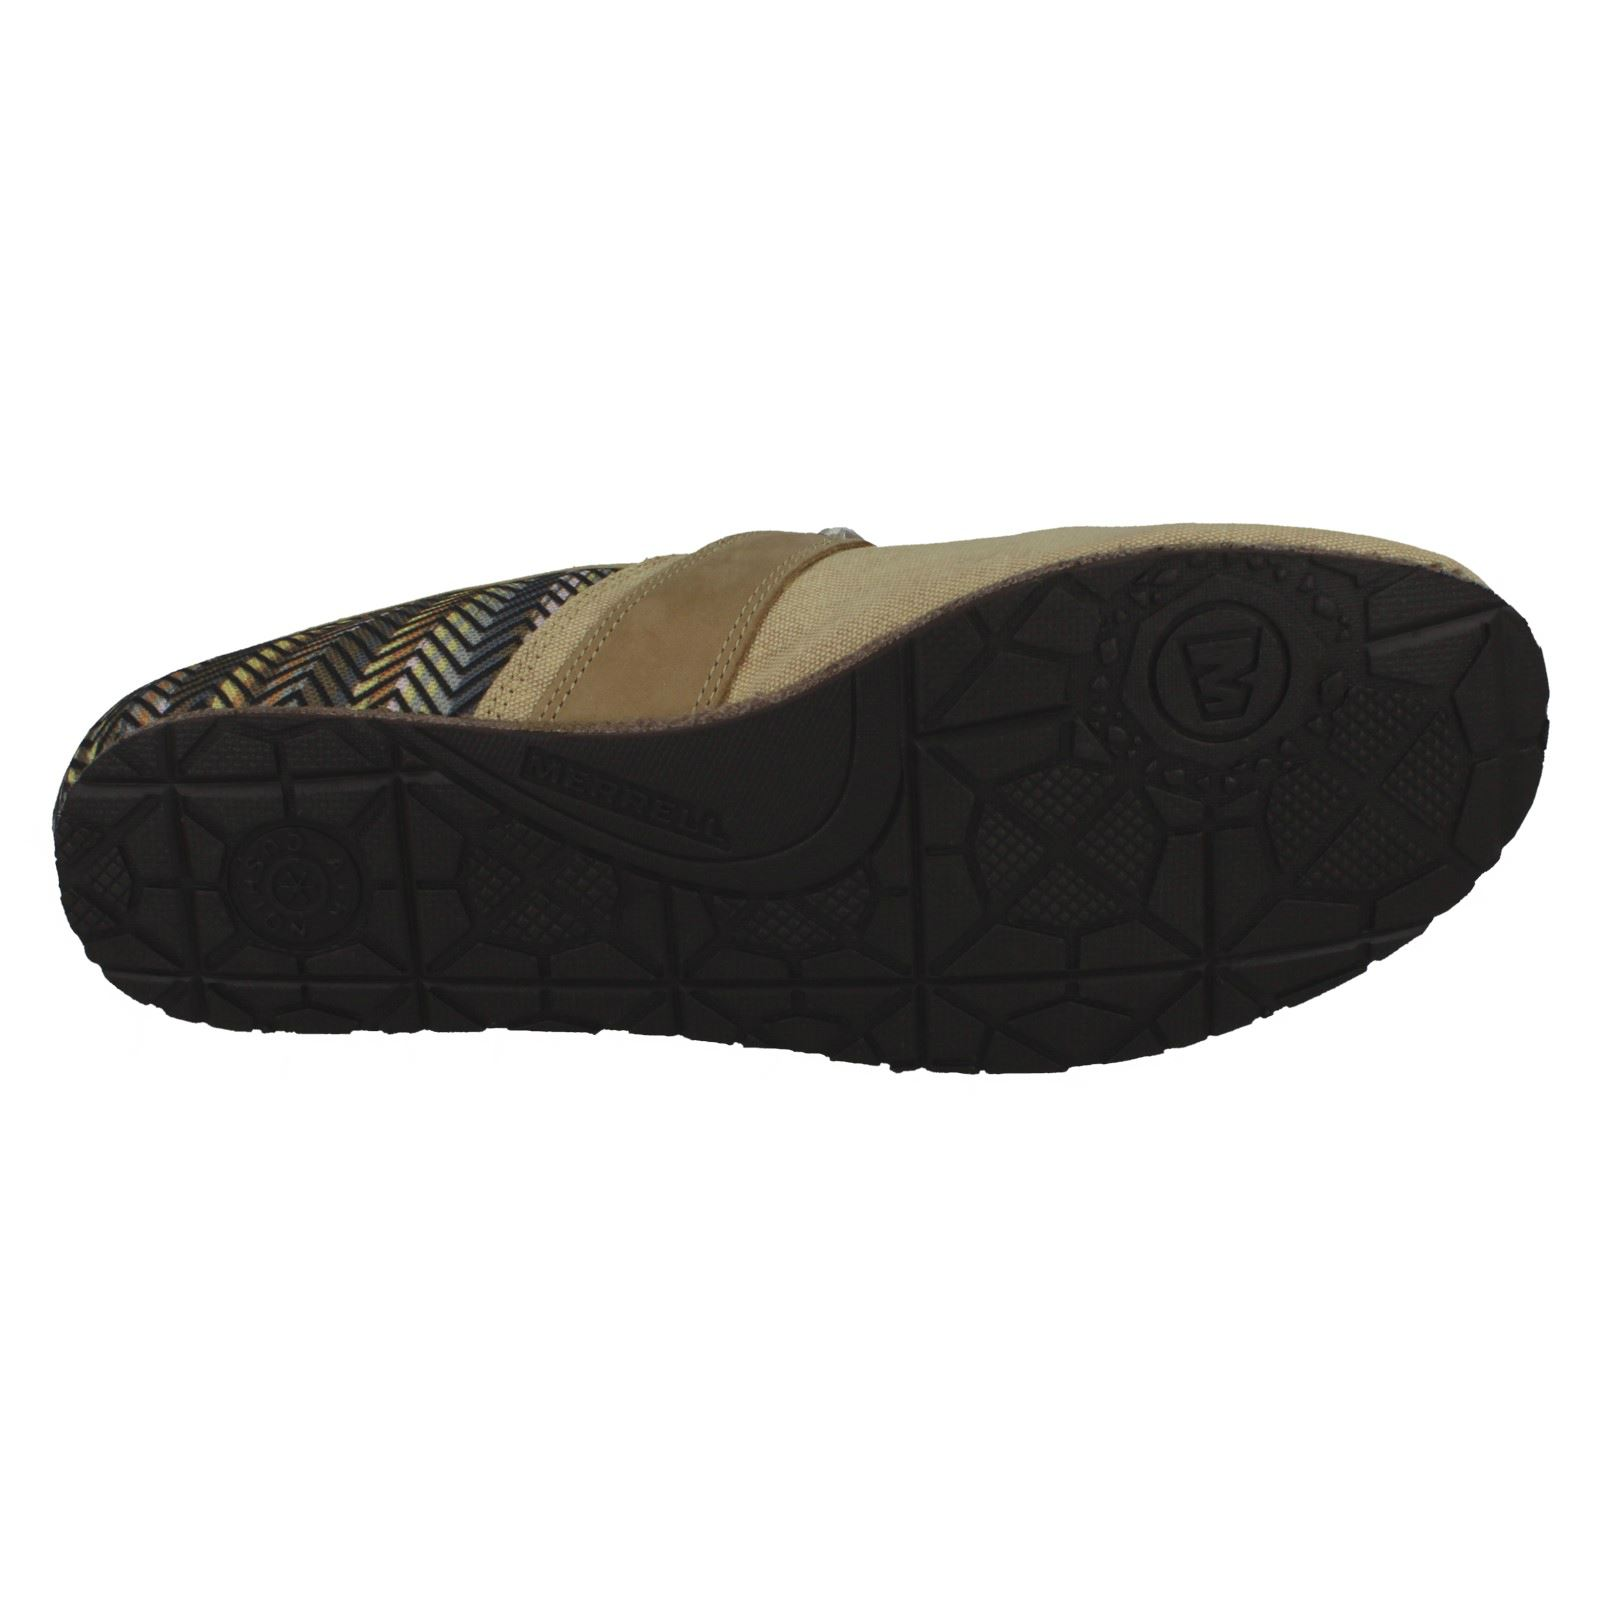 Ladies-Merrell-Casual-Flat-Shoes-Artemisia thumbnail 3